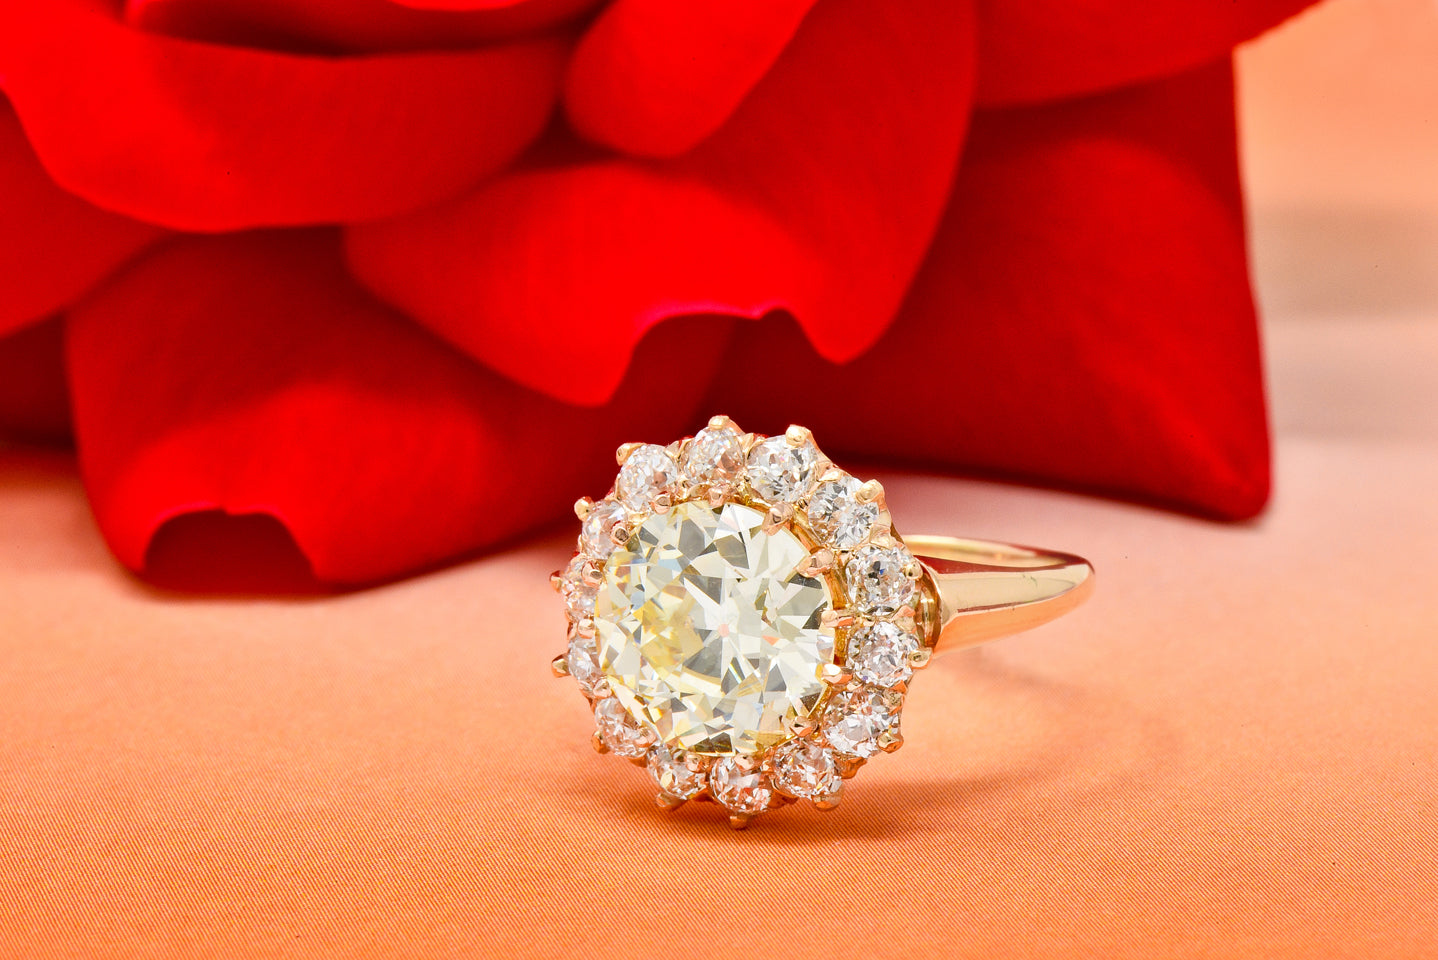 Rose Retro Old European Cut Diamond Cluster Engagement Ring Antique Engagement Rings